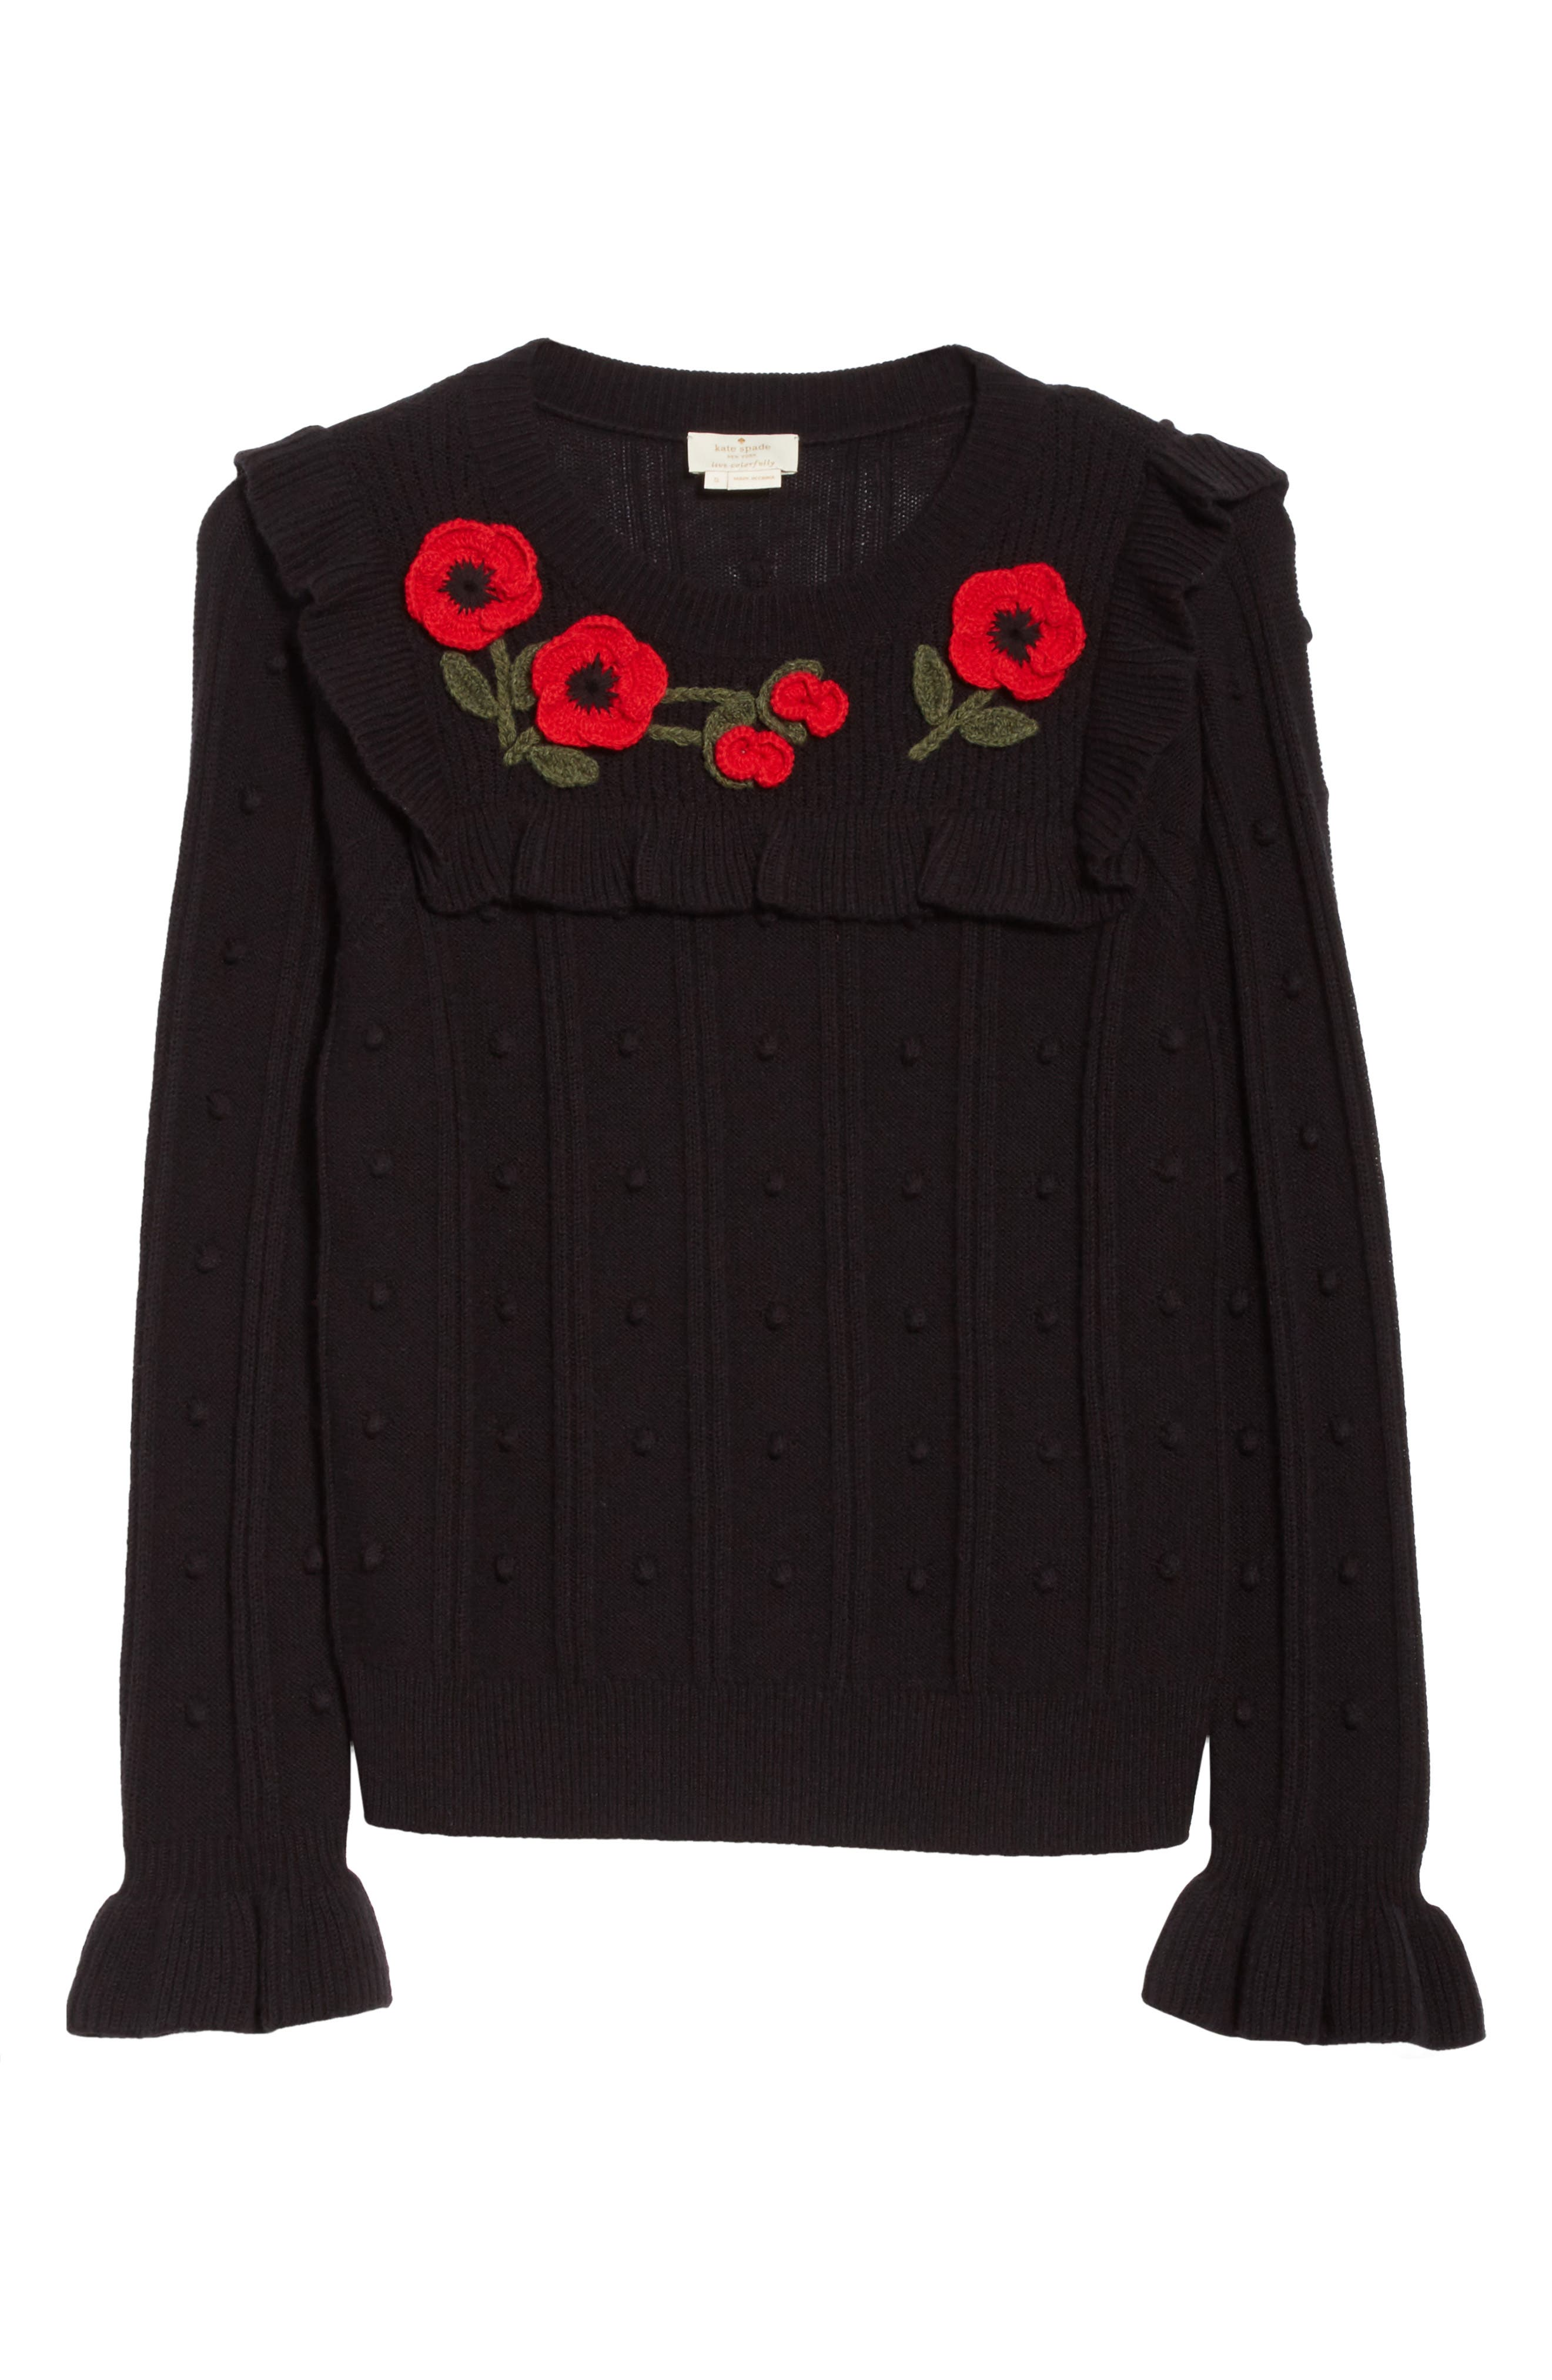 poppy embroidered sweater,                             Alternate thumbnail 6, color,                             001